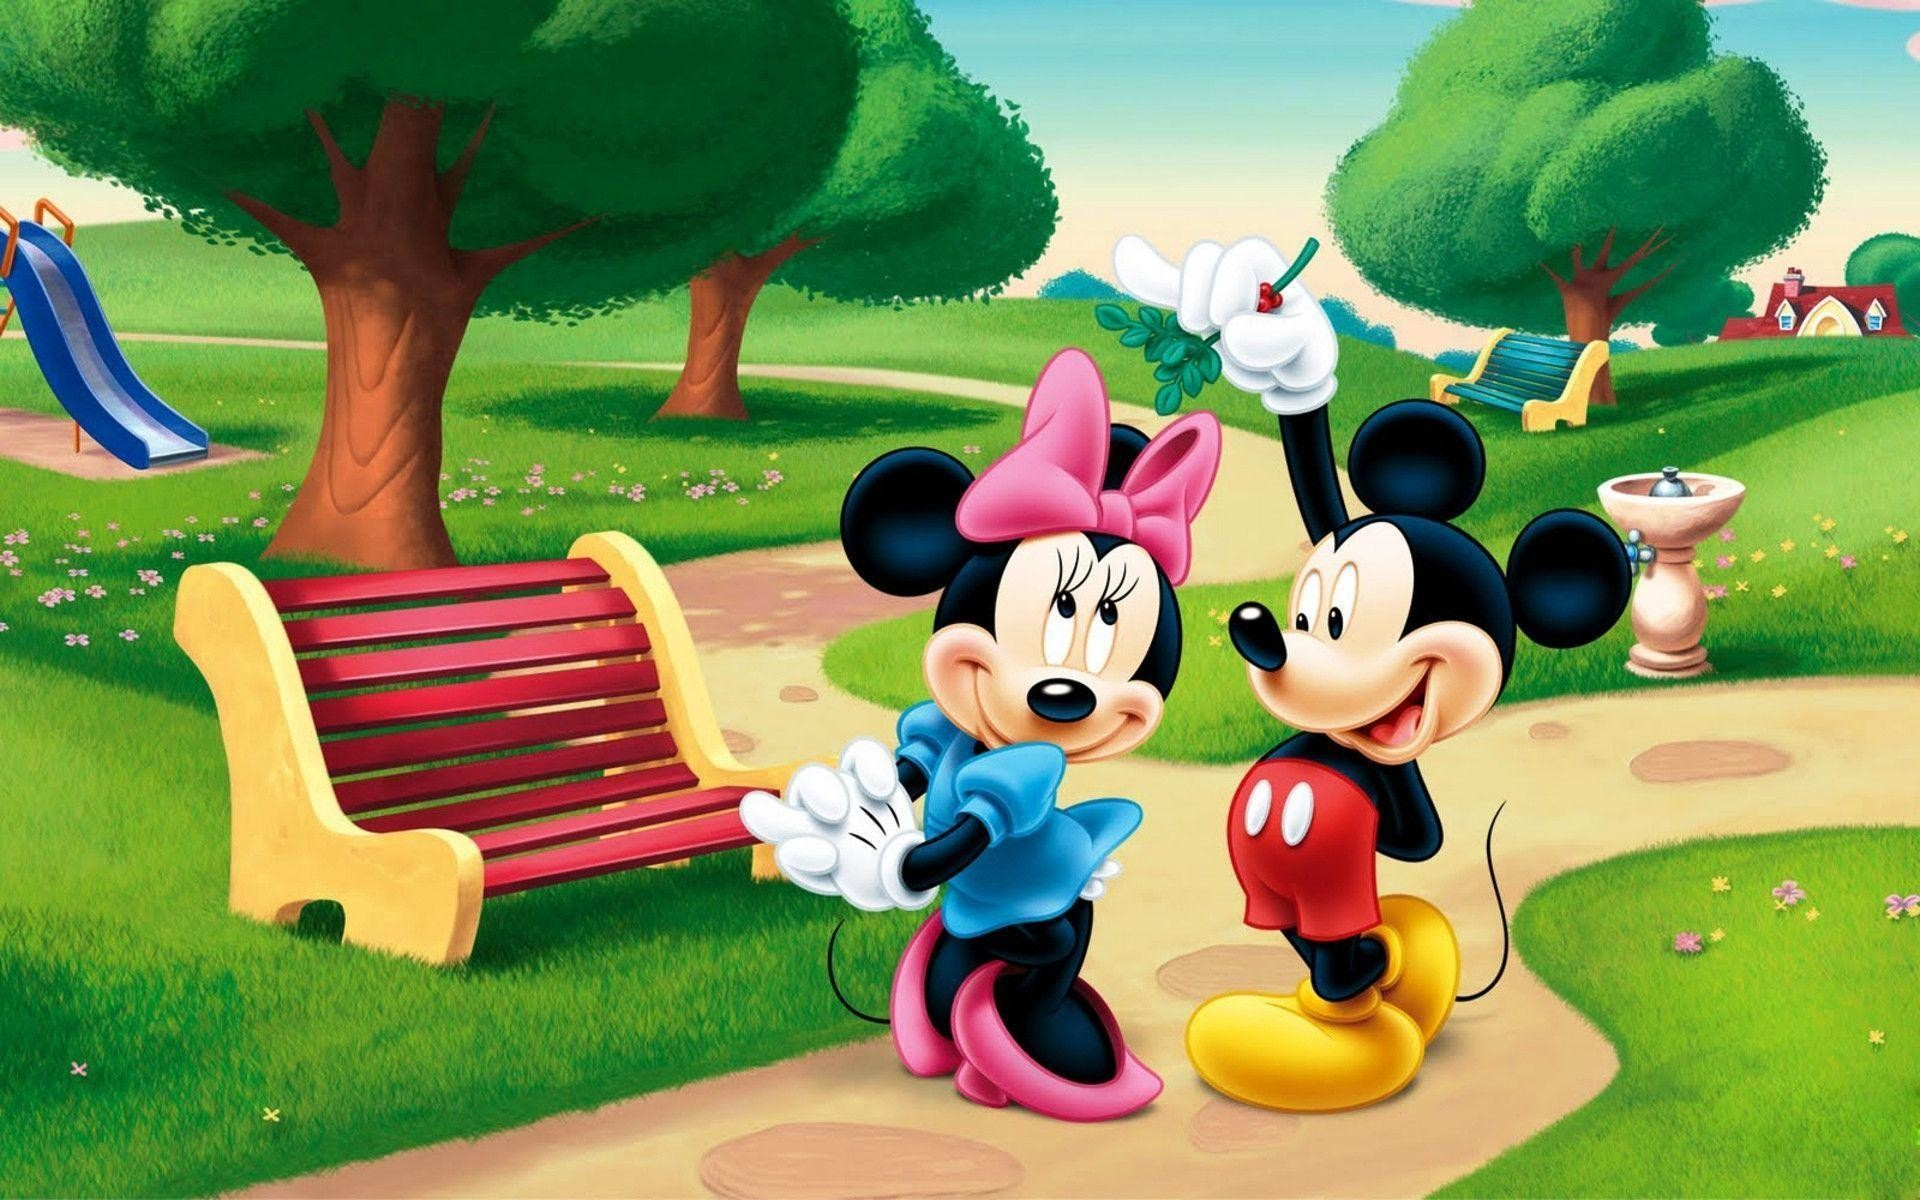 1920x1200 Wallpapers For > Minnie Mouse And Mickey Mouse Wallpaper